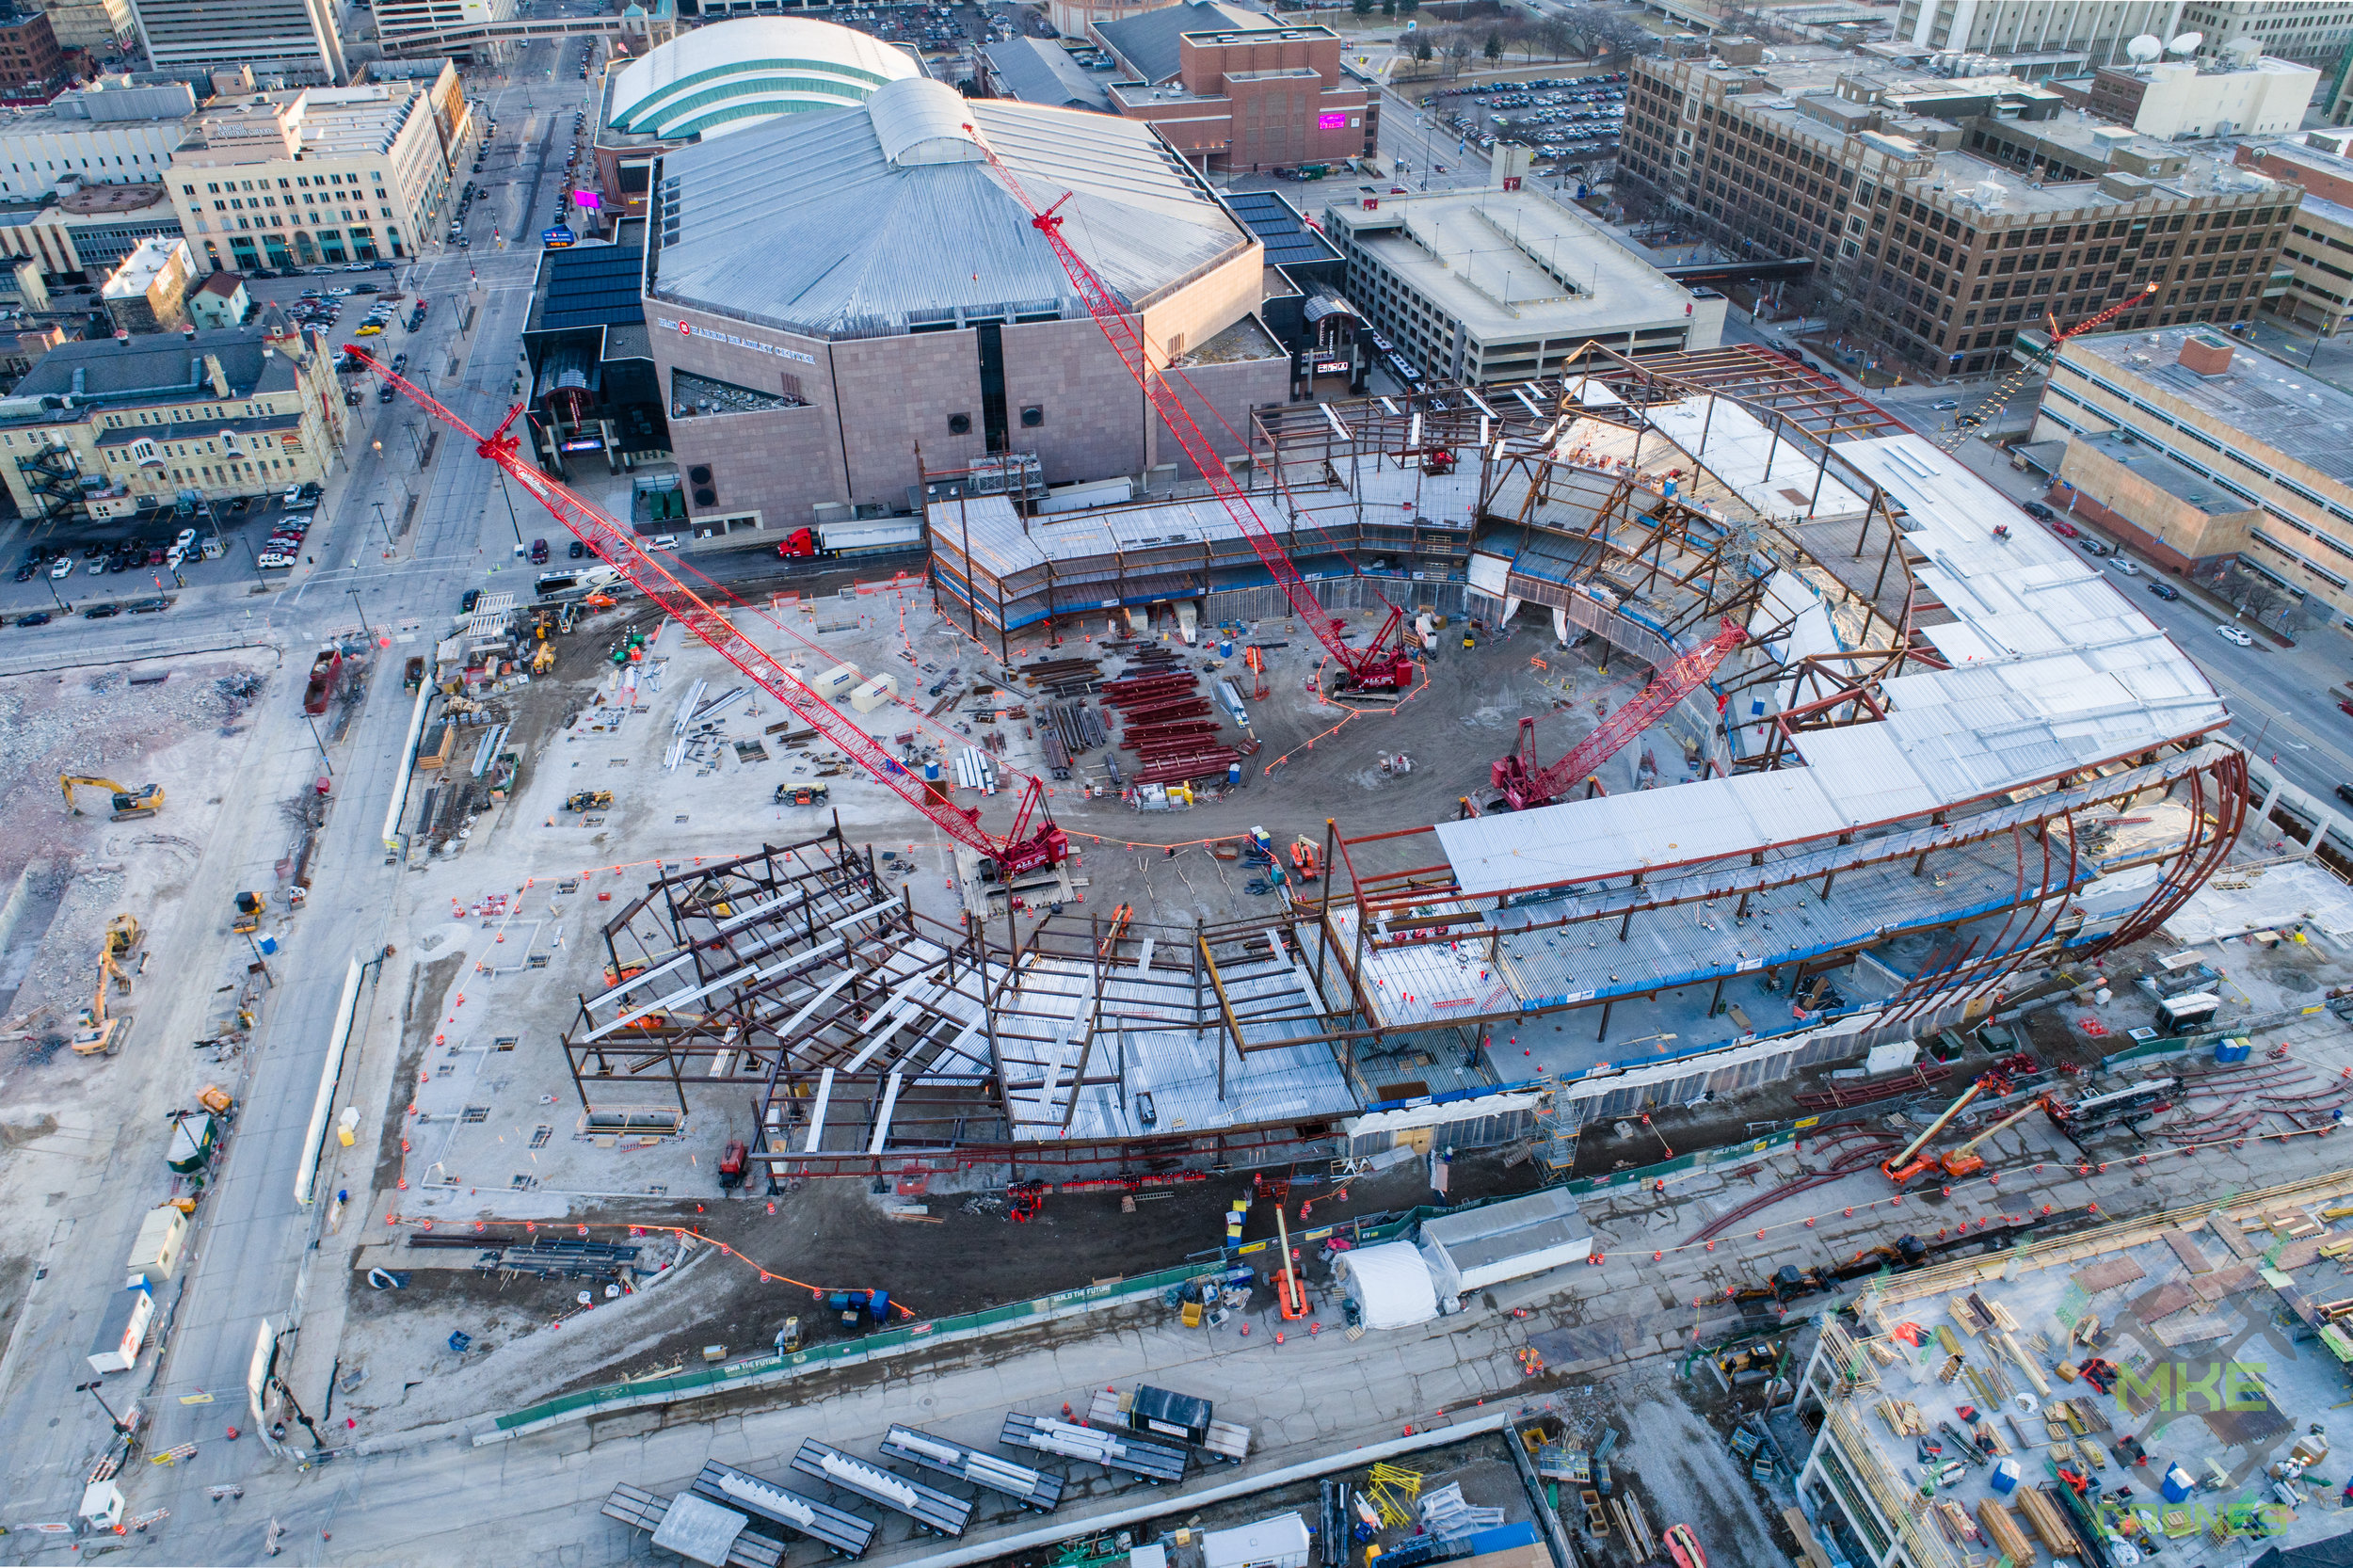 New Bucks Arena - Milwaukee, WI